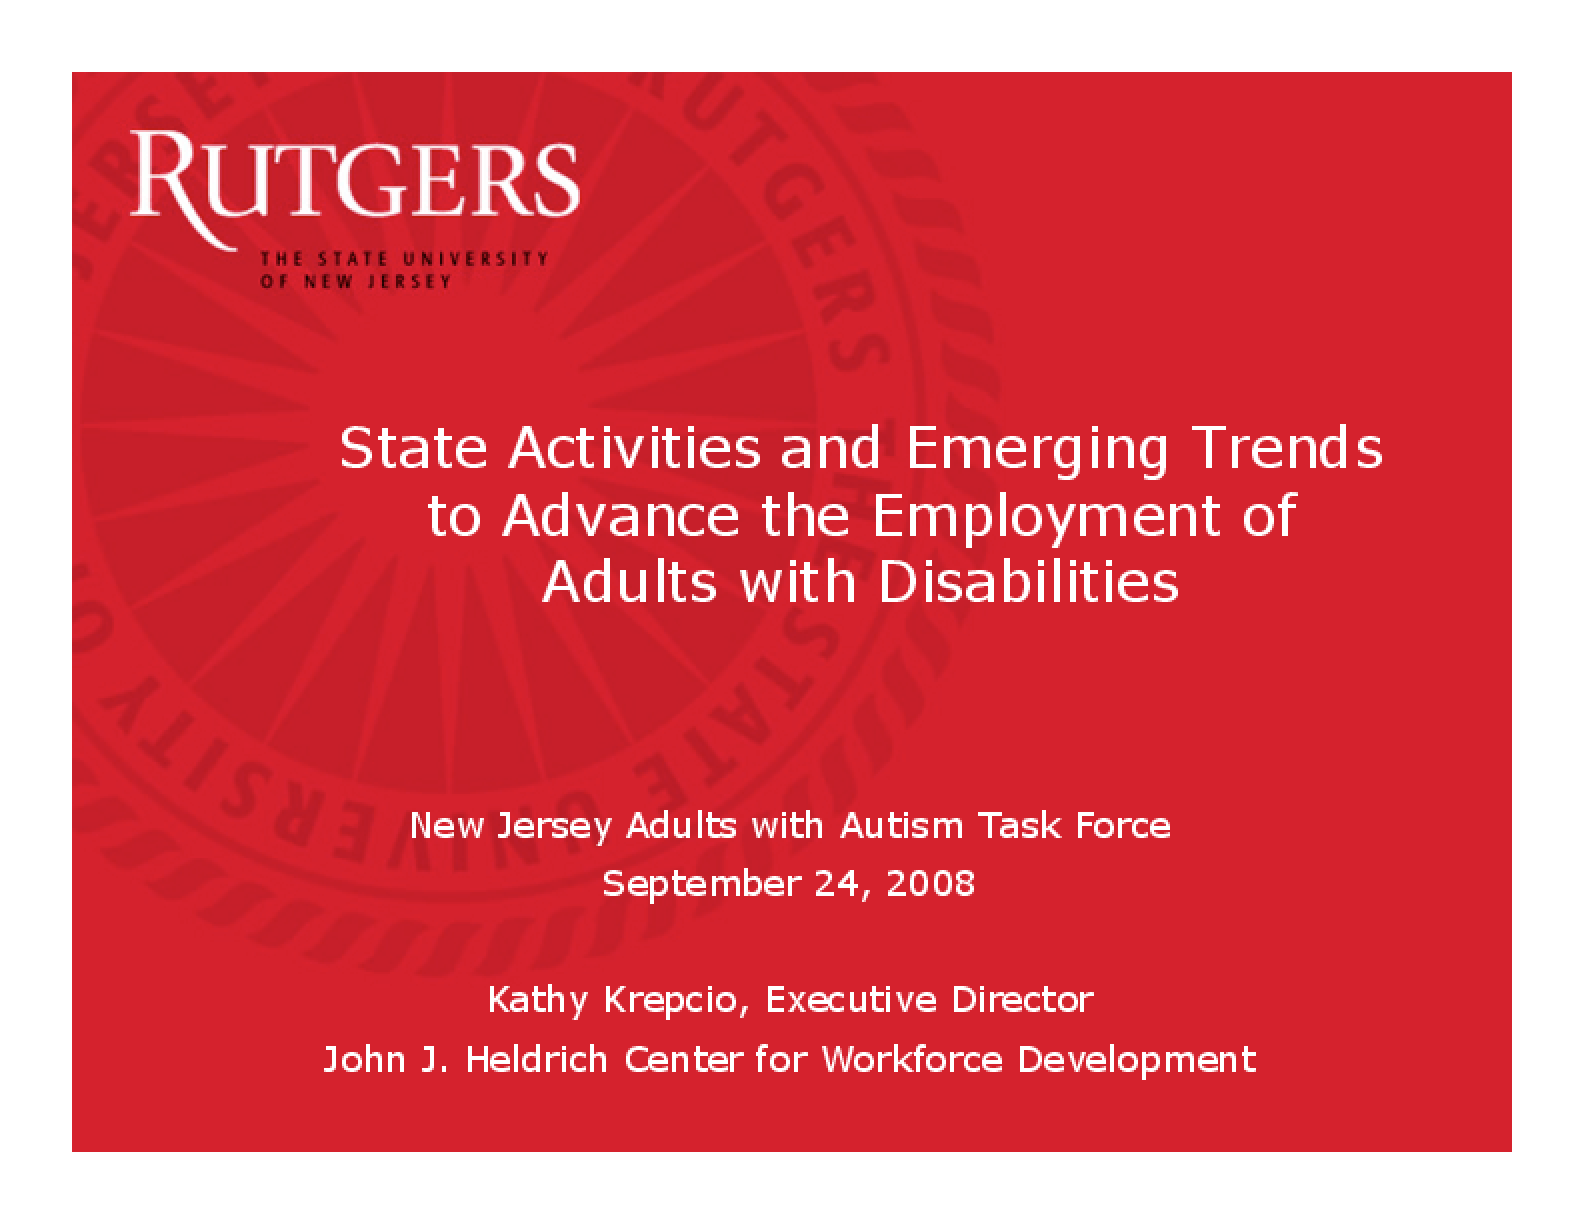 State Activities and Emerging Trends to Advance the Employment of Adults with Disabilities